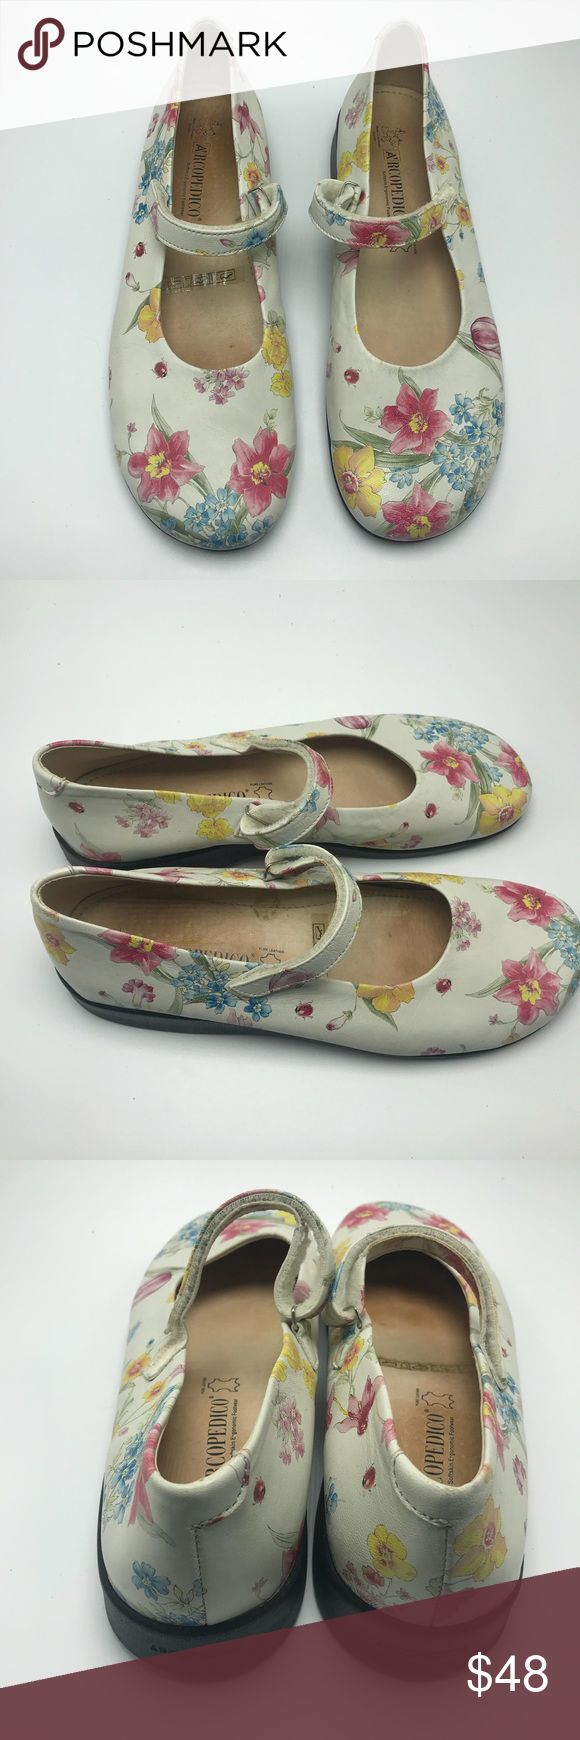 Arcopedico Scalia Floral Mary Jane Shoes Sz 42 Gorgeous Arcopedico Floral Mary Jane Shoes. Excellent used condition. See size chart for sizing info. Arcopedico Shoes Flats & Loafers